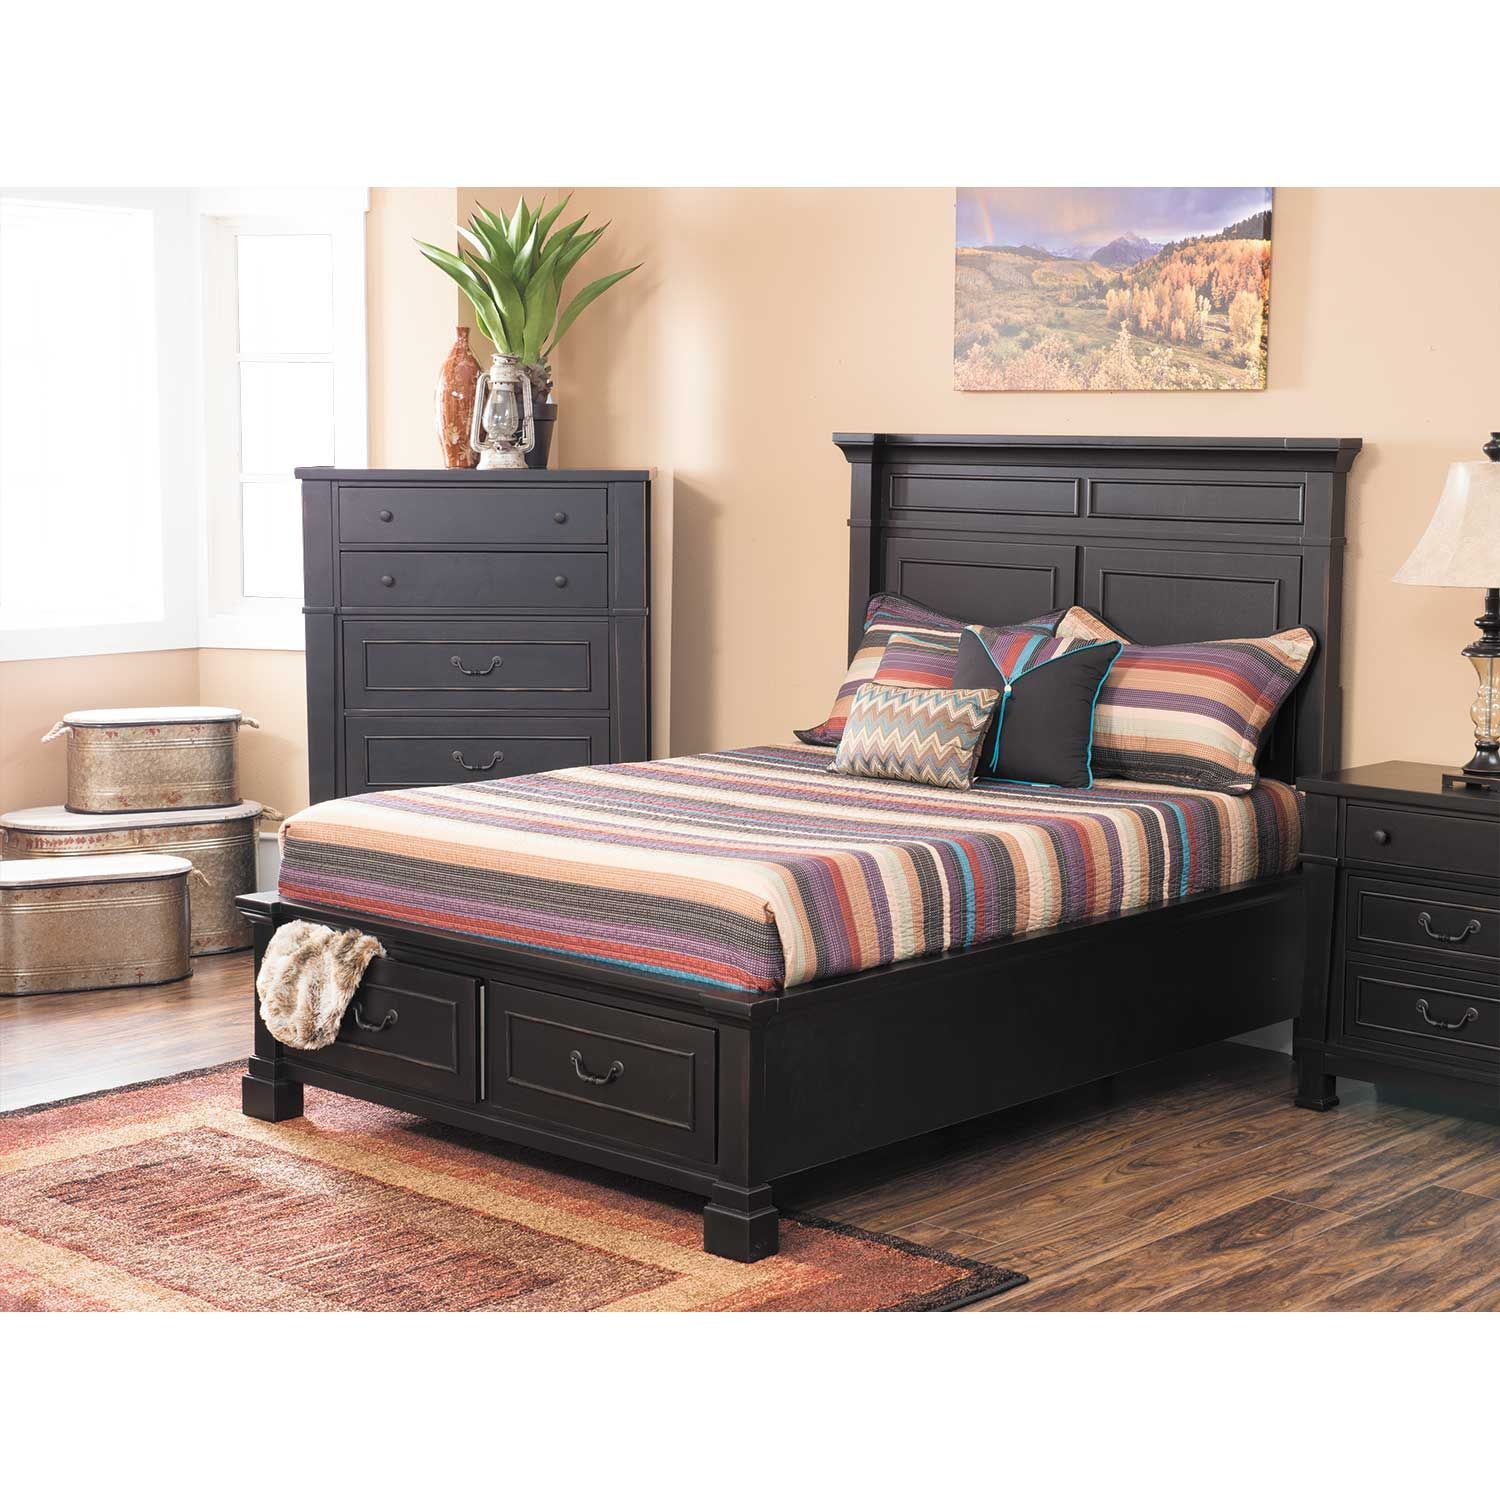 Picture of Annapolis Full Bed